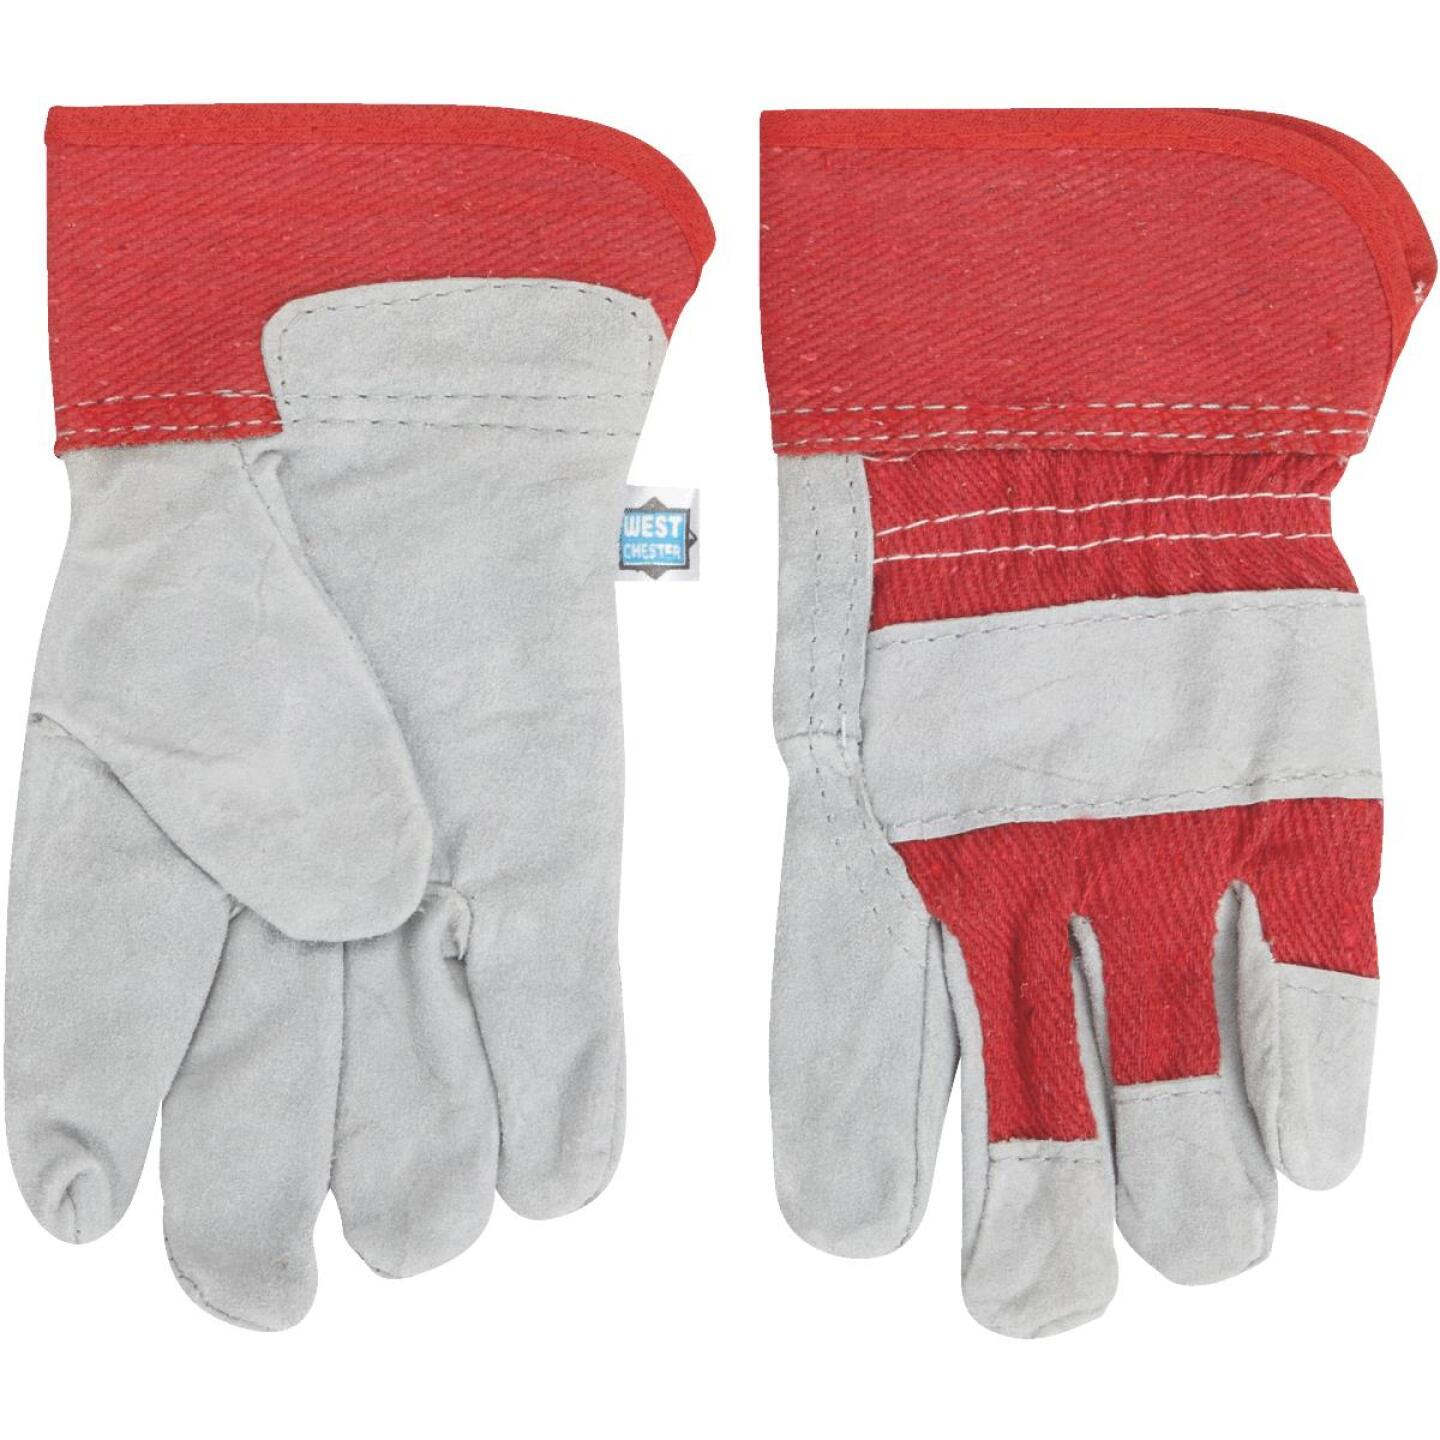 West Chester Protective Gear Age 5 to 8 Leather Glove Image 3